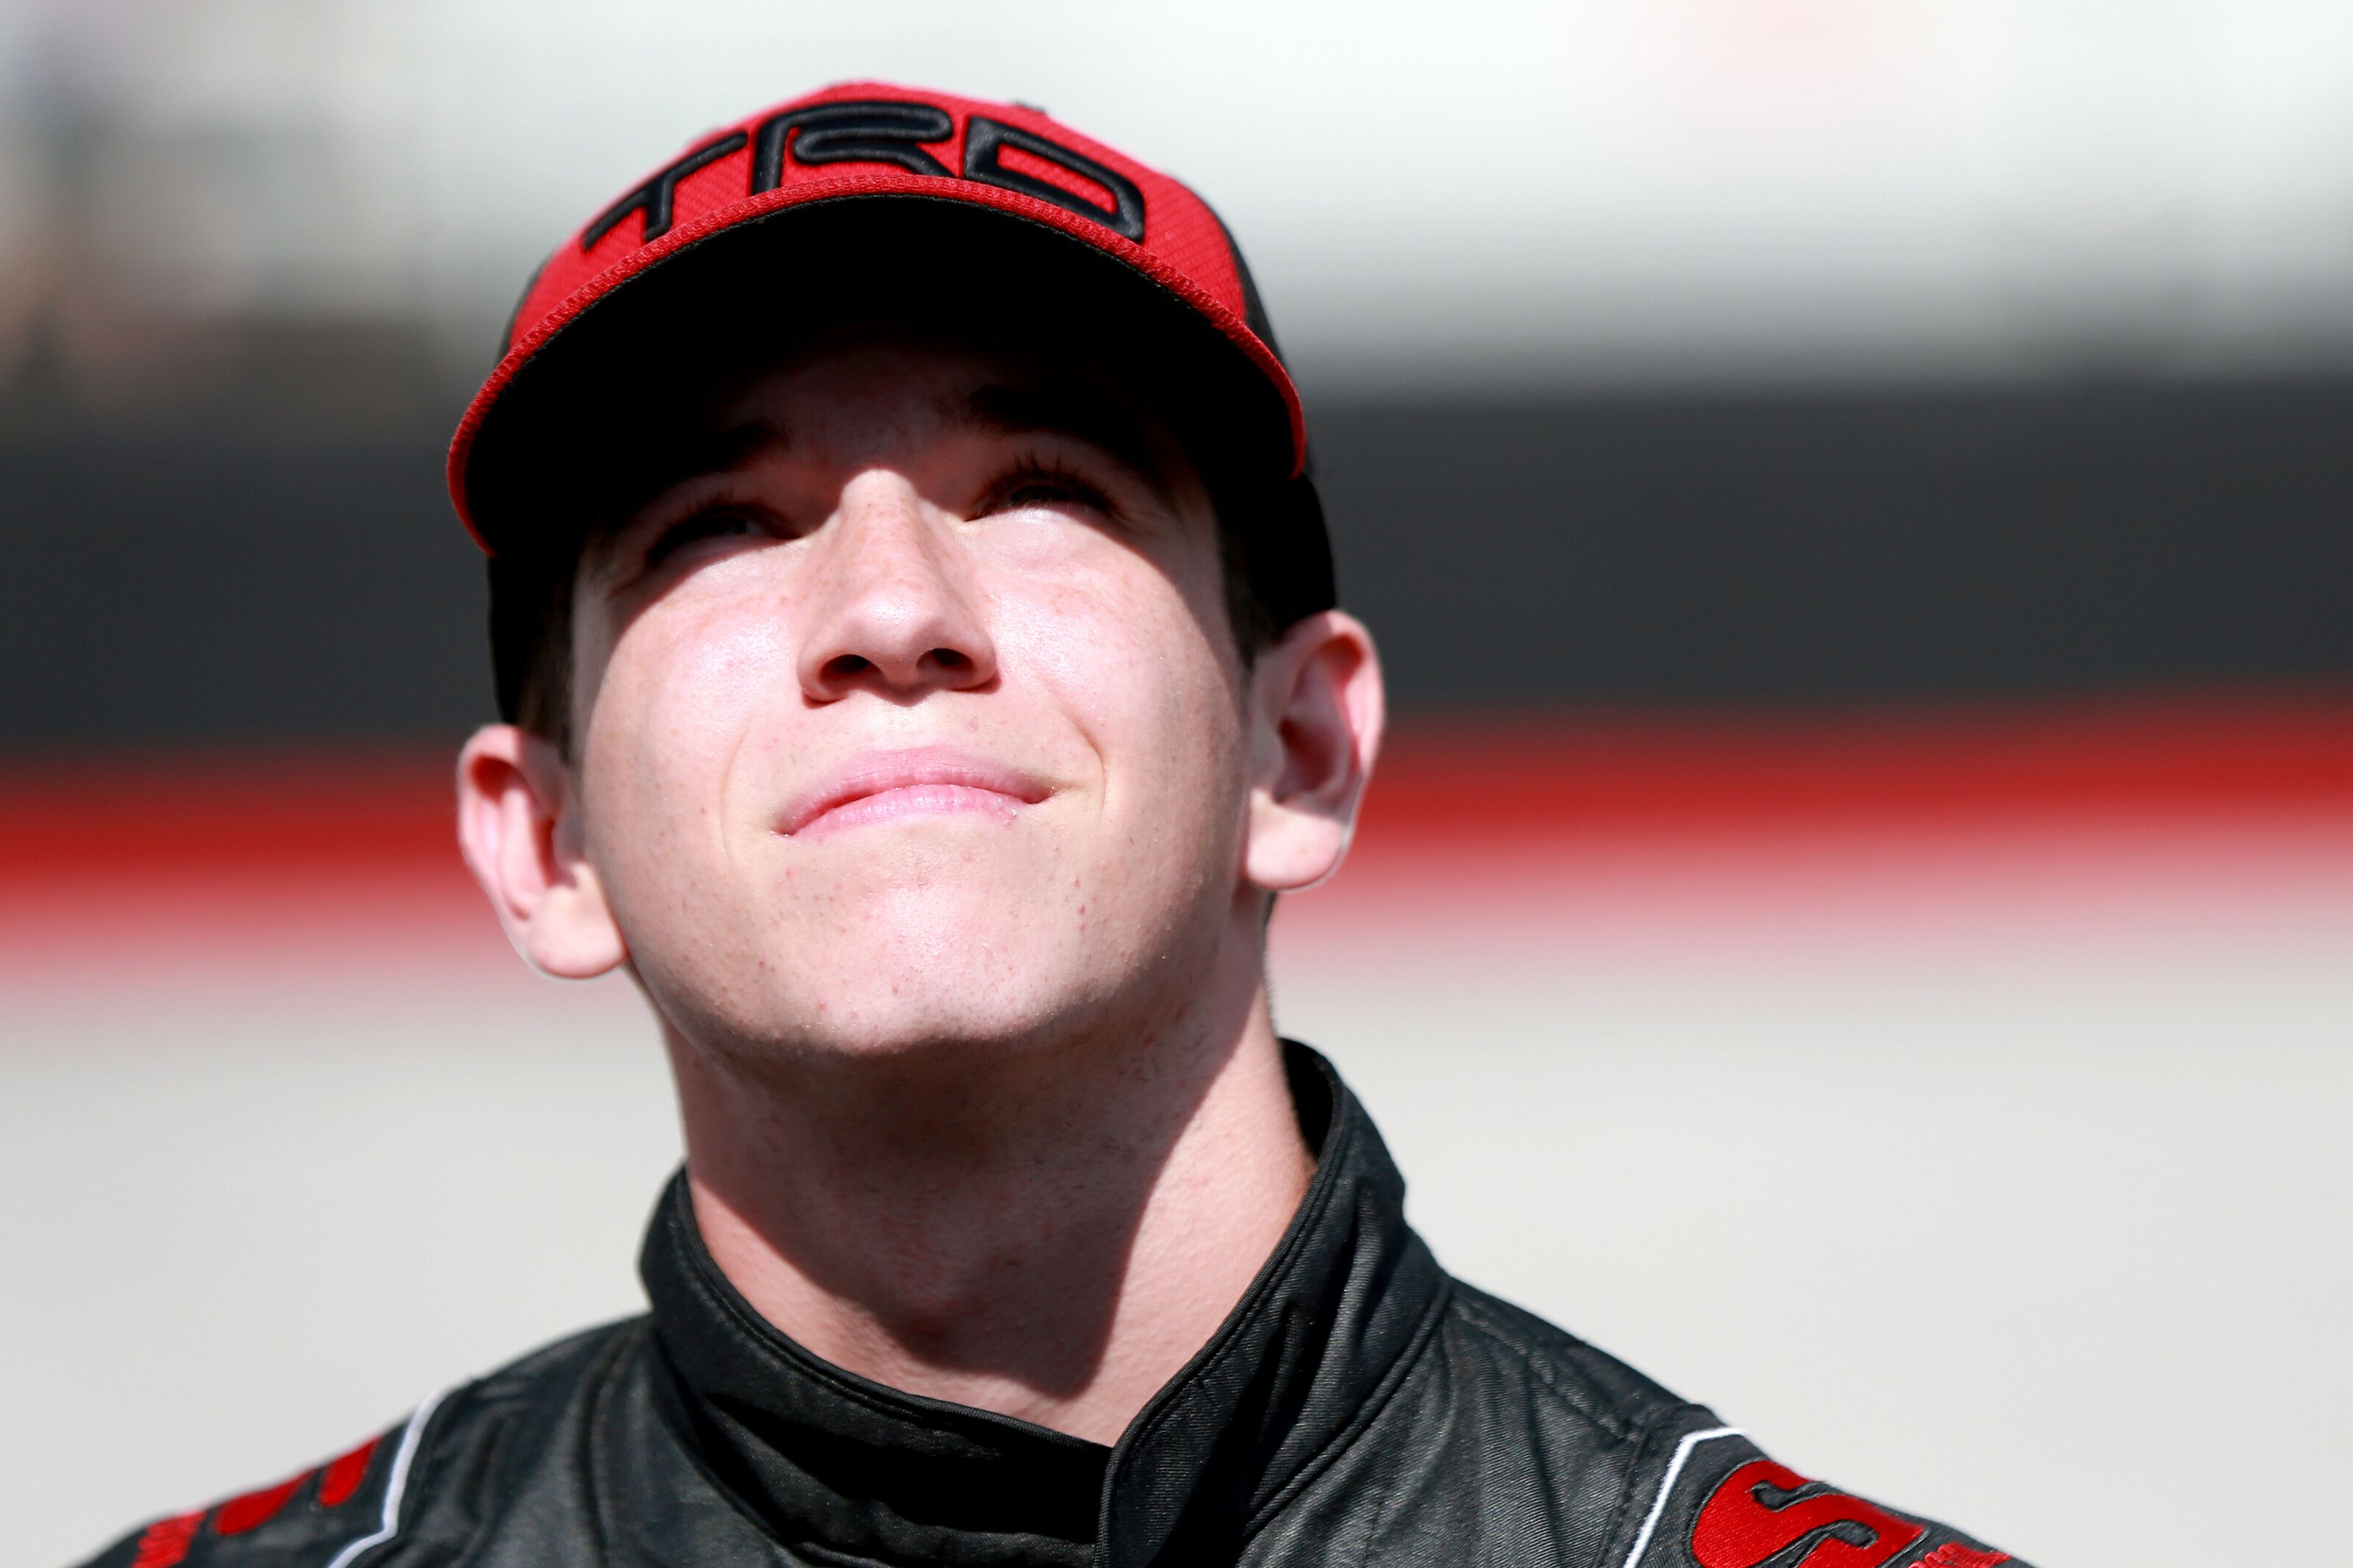 NASCAR's next most promising prospect emerging rapidly